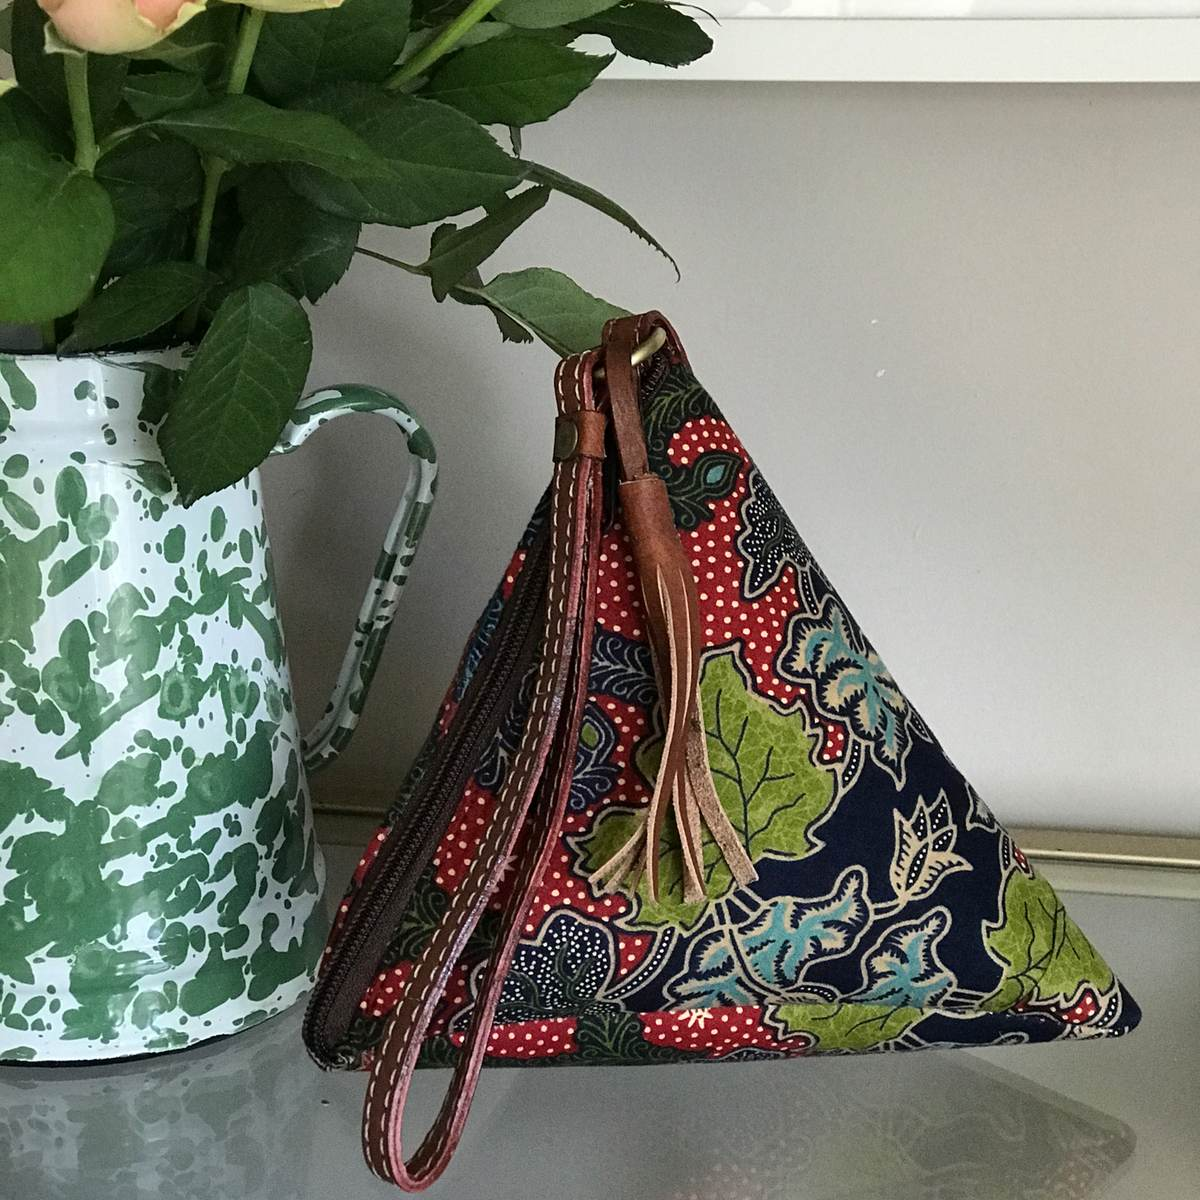 Bintang triangle batik clutch bag